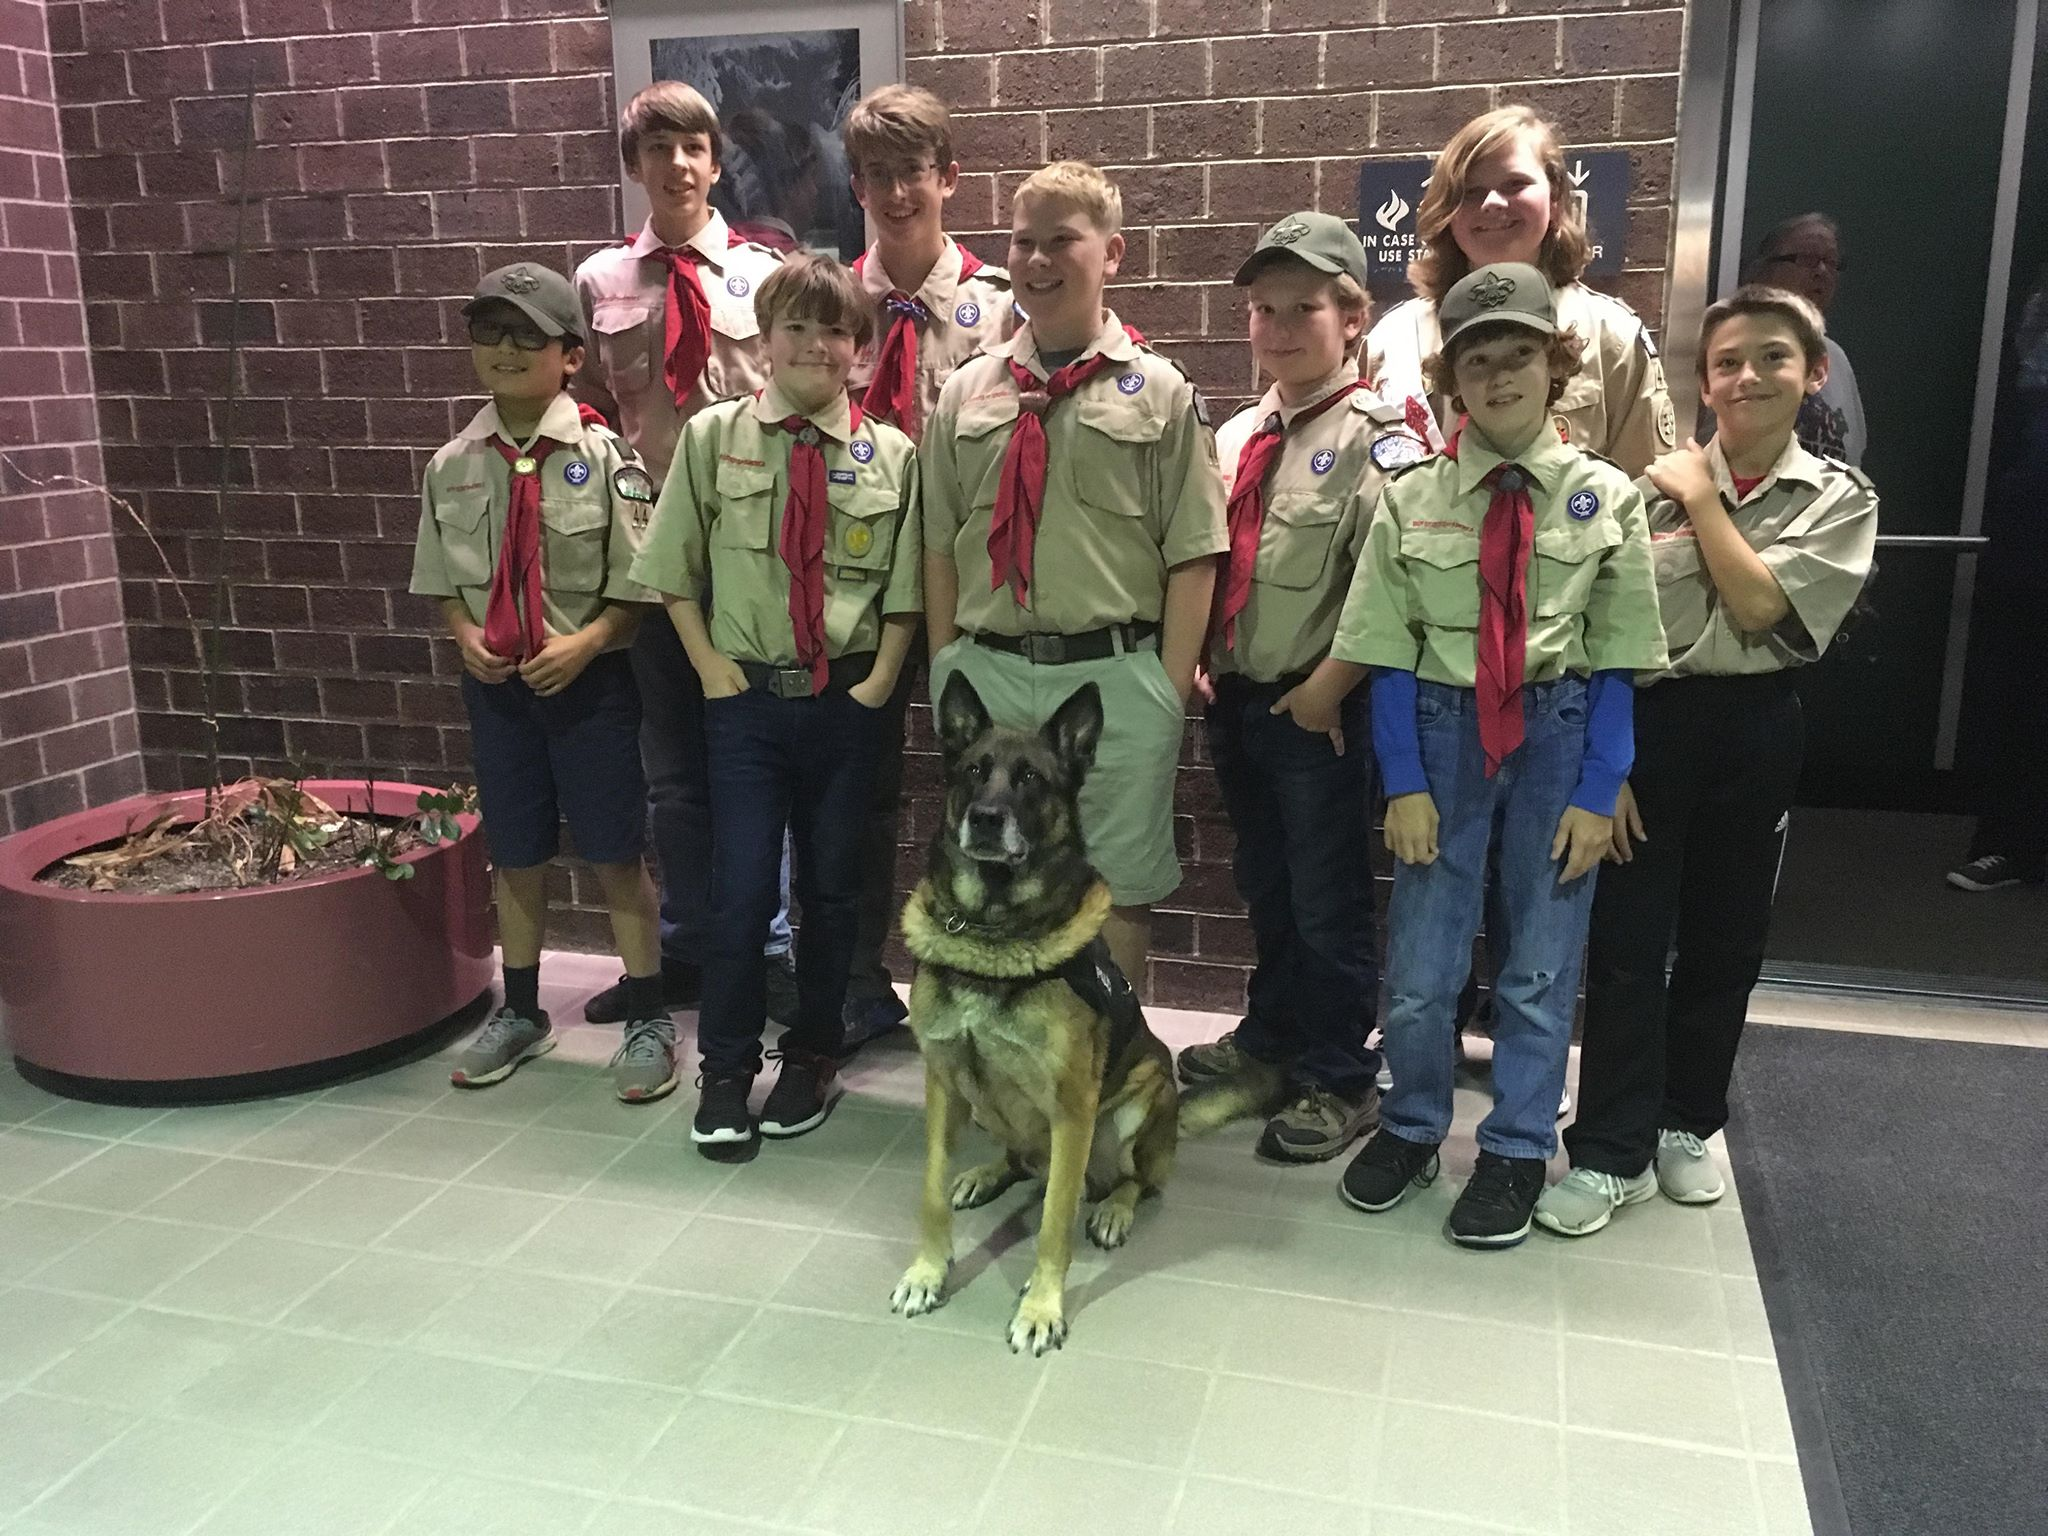 Jackson, a K9 with the RCPD, poses with a local boy scout troop celebrating his retirement